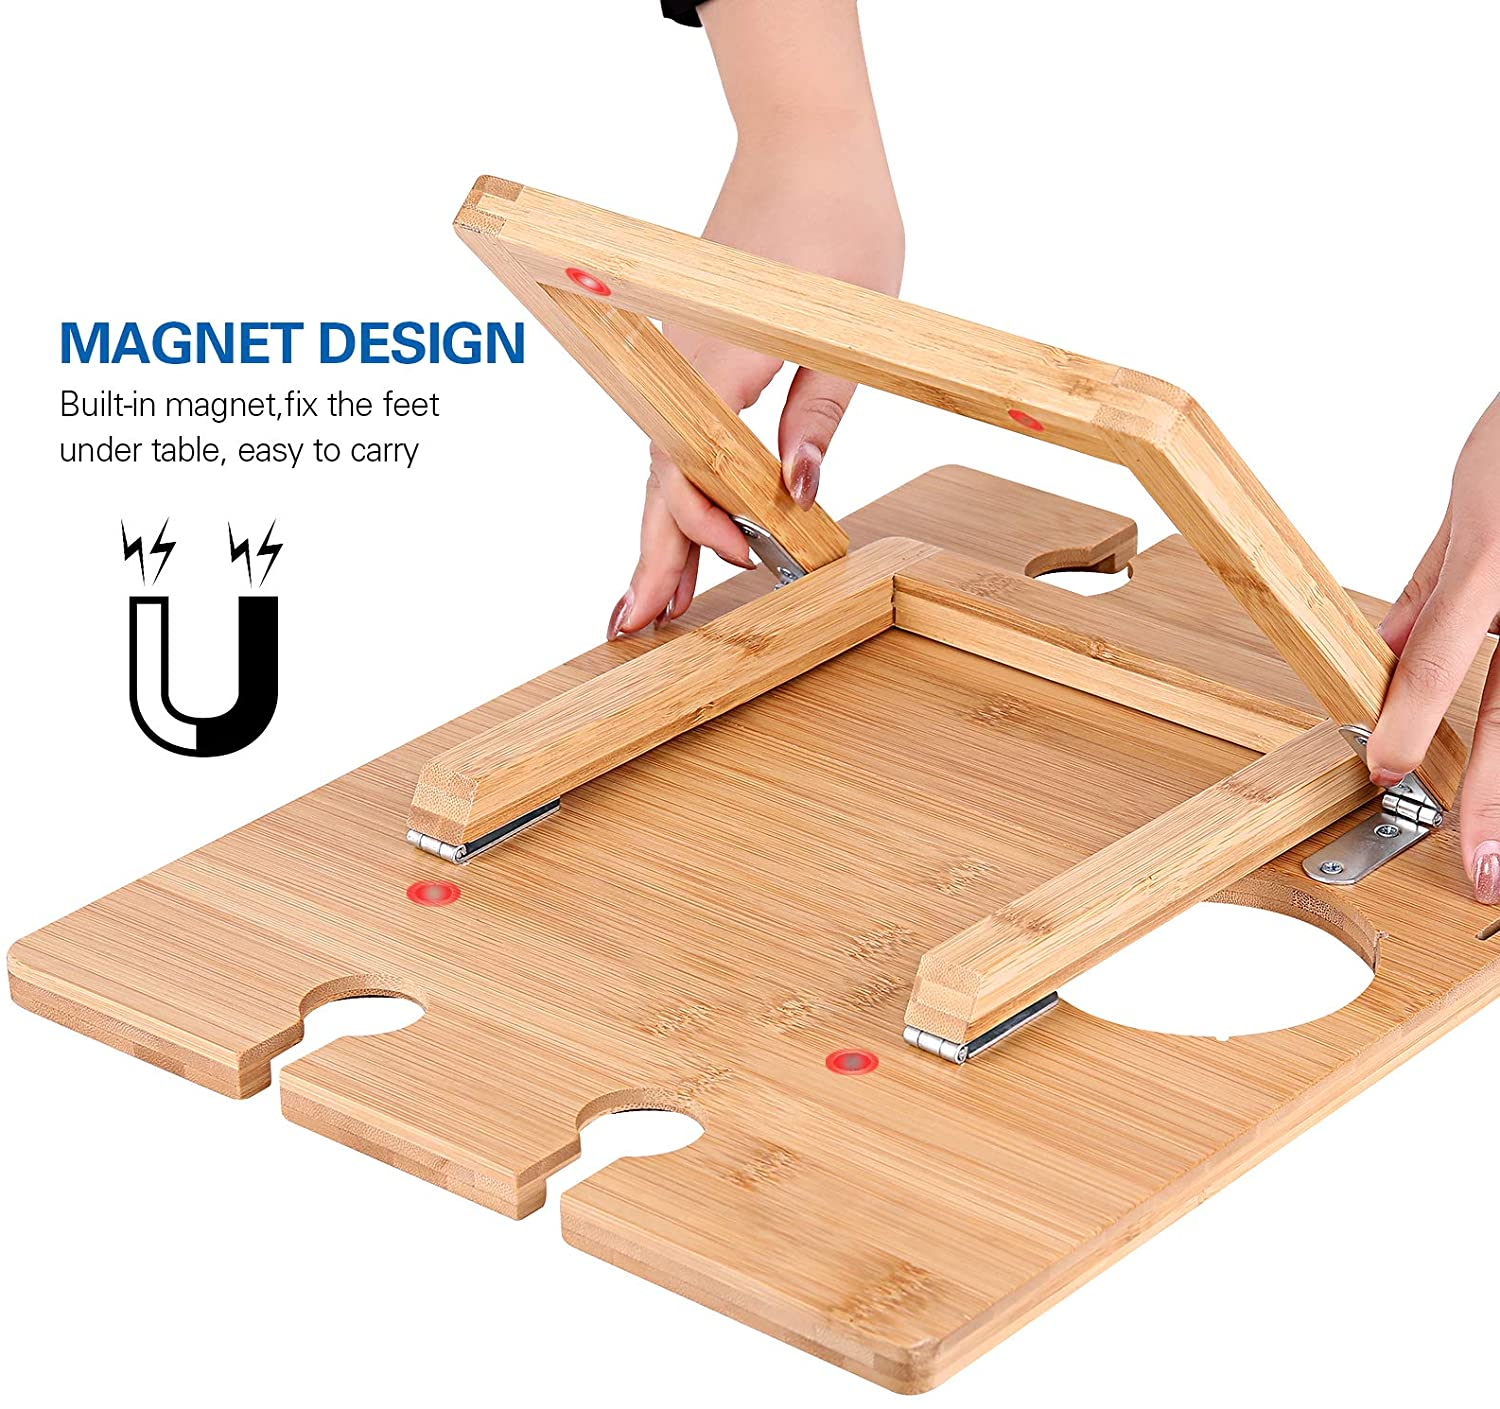 Bamboo Folding Picnic Table With Wine Holder And Wine Glass Holder Bamboo Collapsible Snack Table